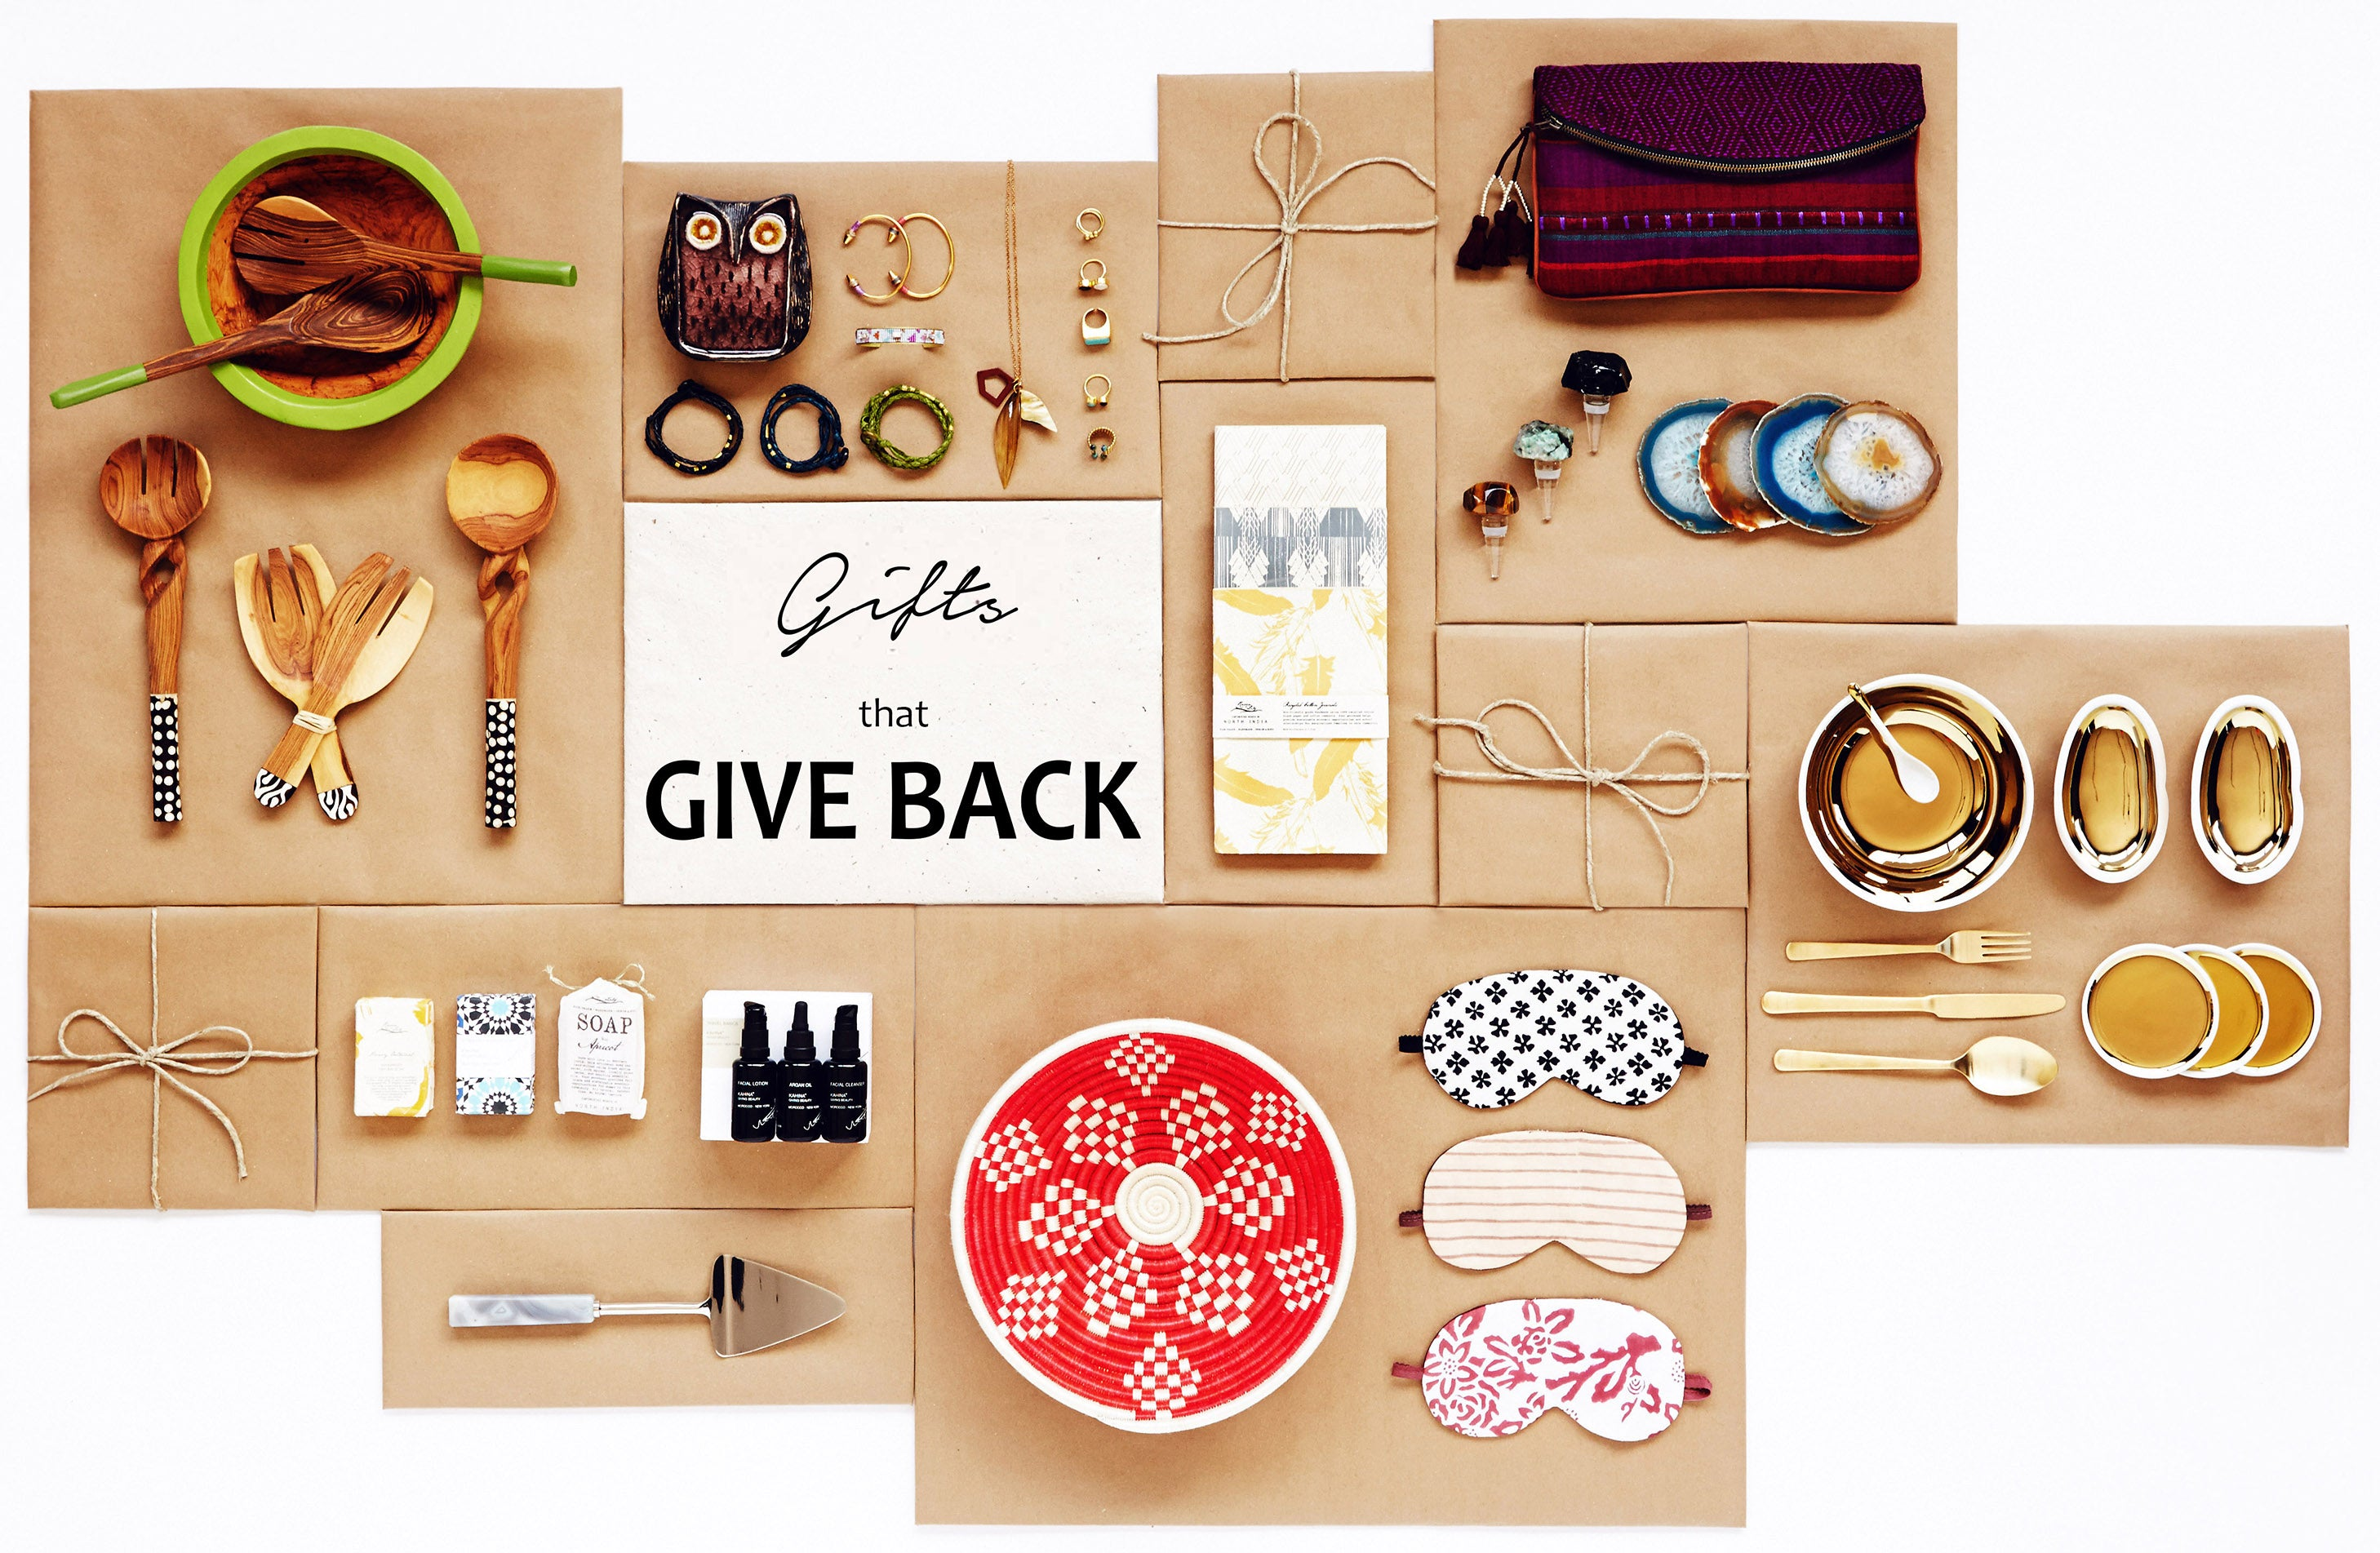 Corporate Gifts that give back